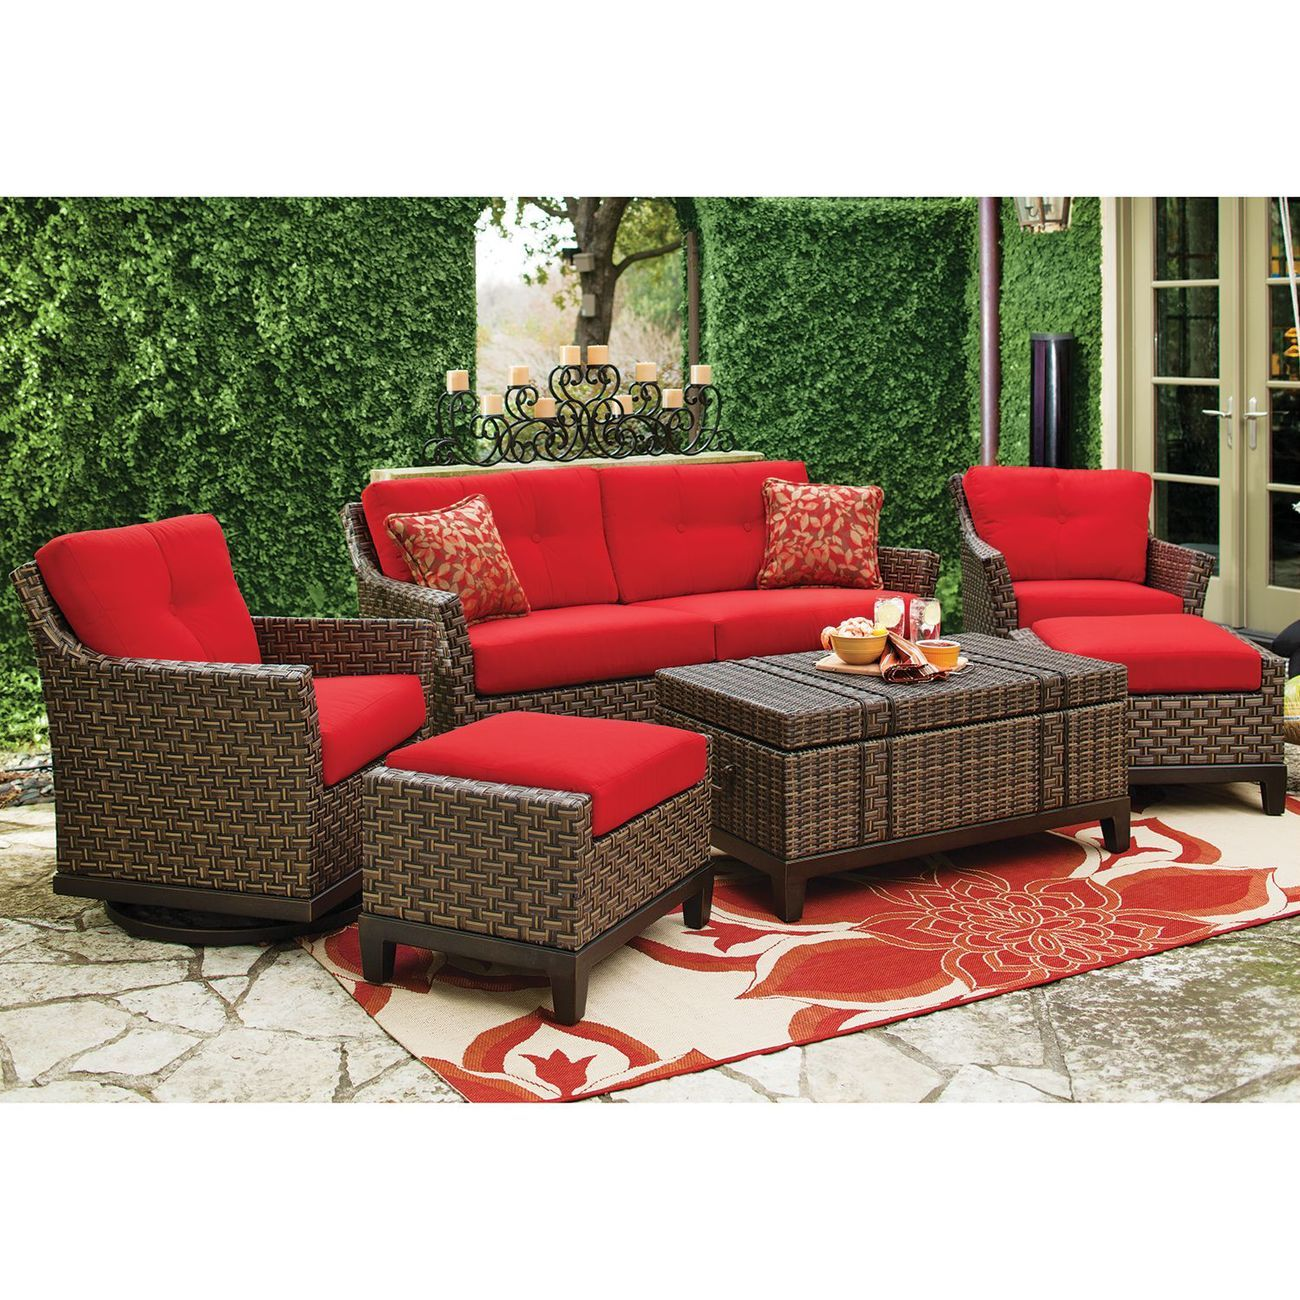 Loveseat Two 360 Swivel Glider Chairs W Ottomans 4 Decorative